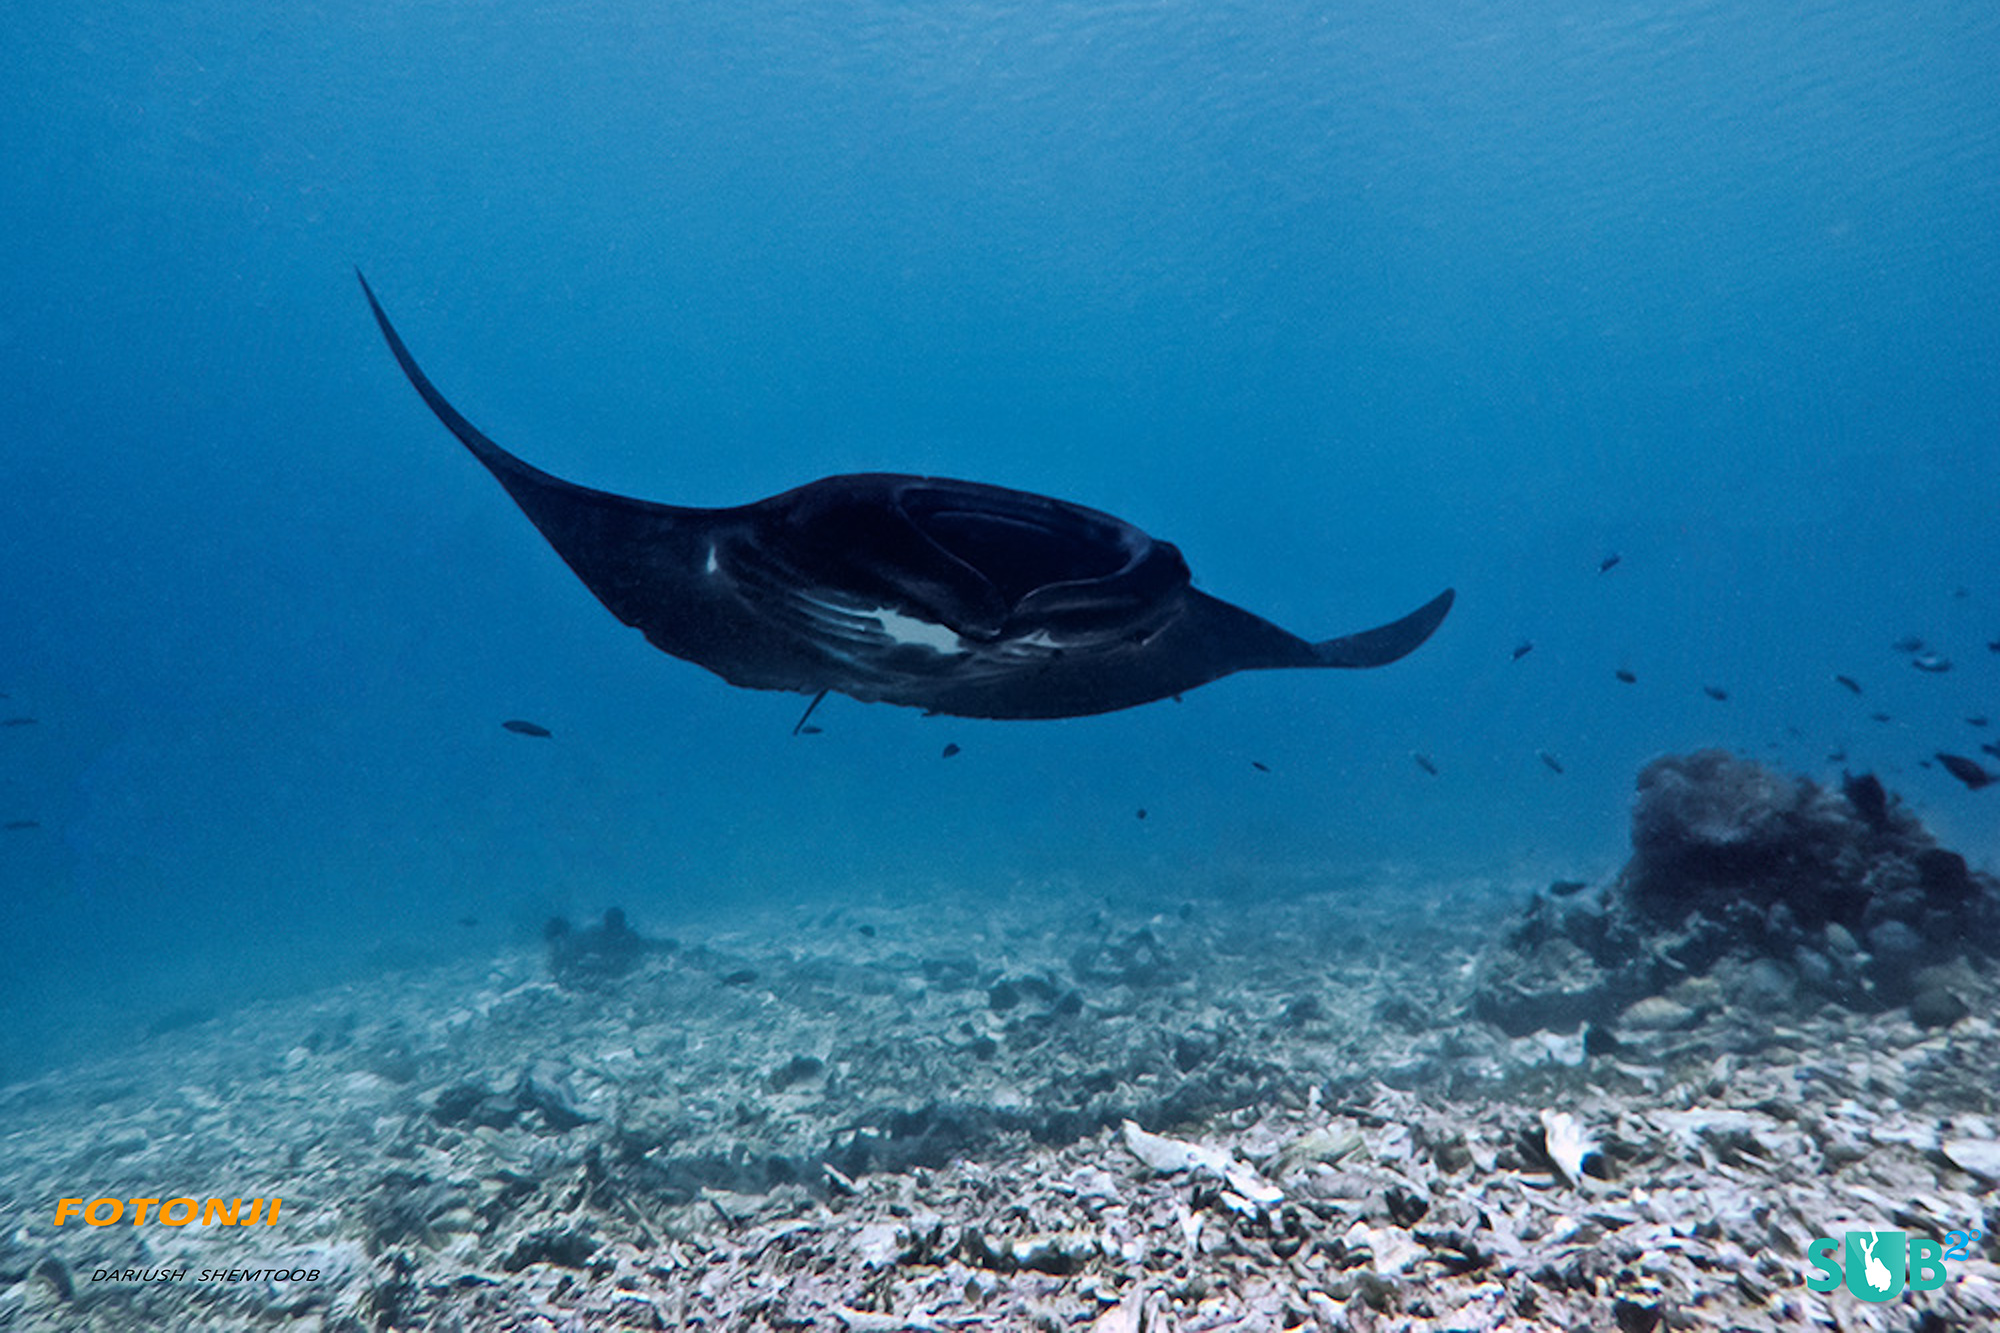 Giant Manta Ray approaching the cleaning station